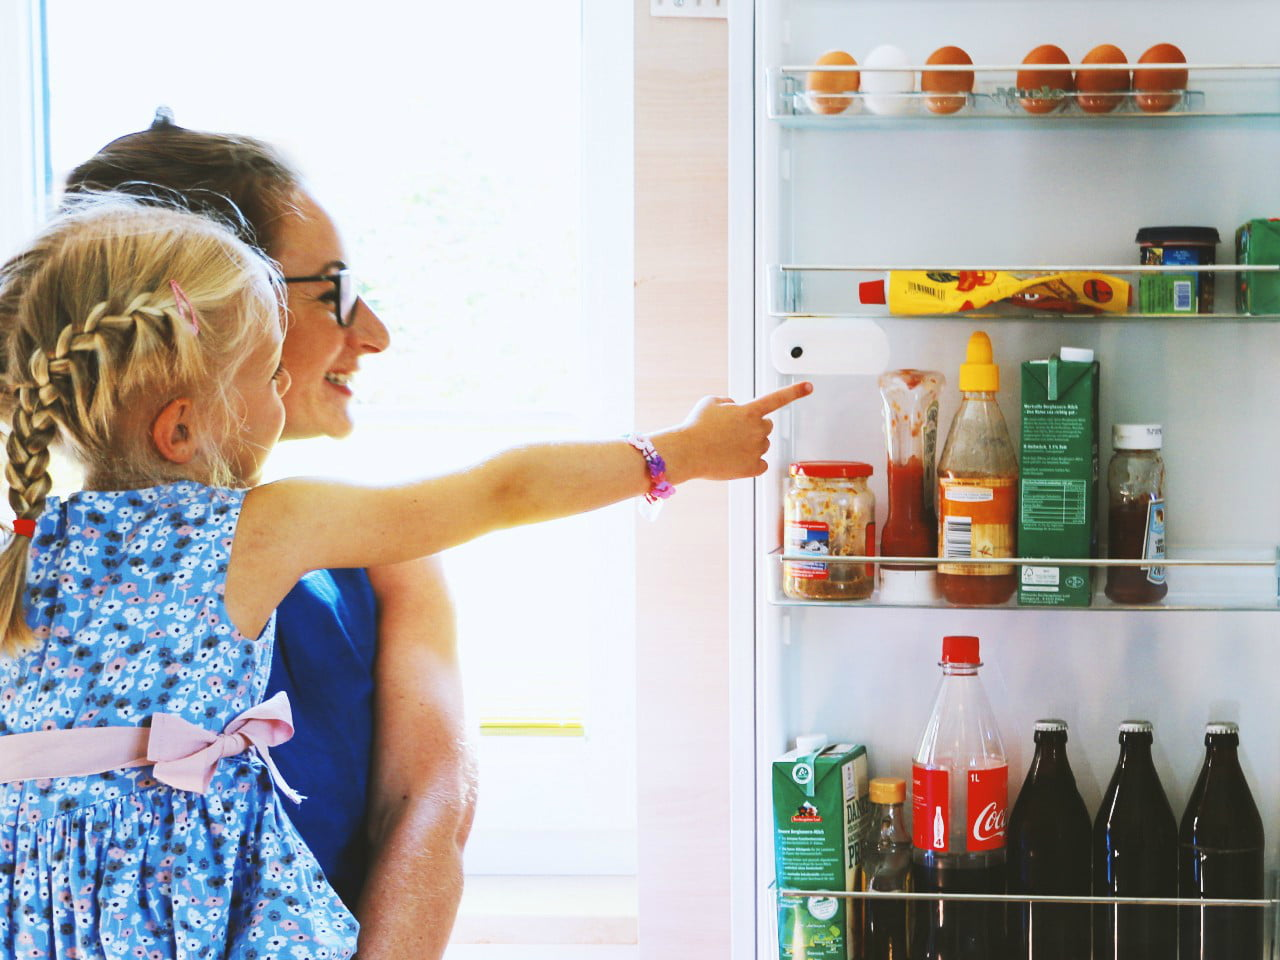 Fridge Eye camera adds smart features to your fridge or cabinets at a low price